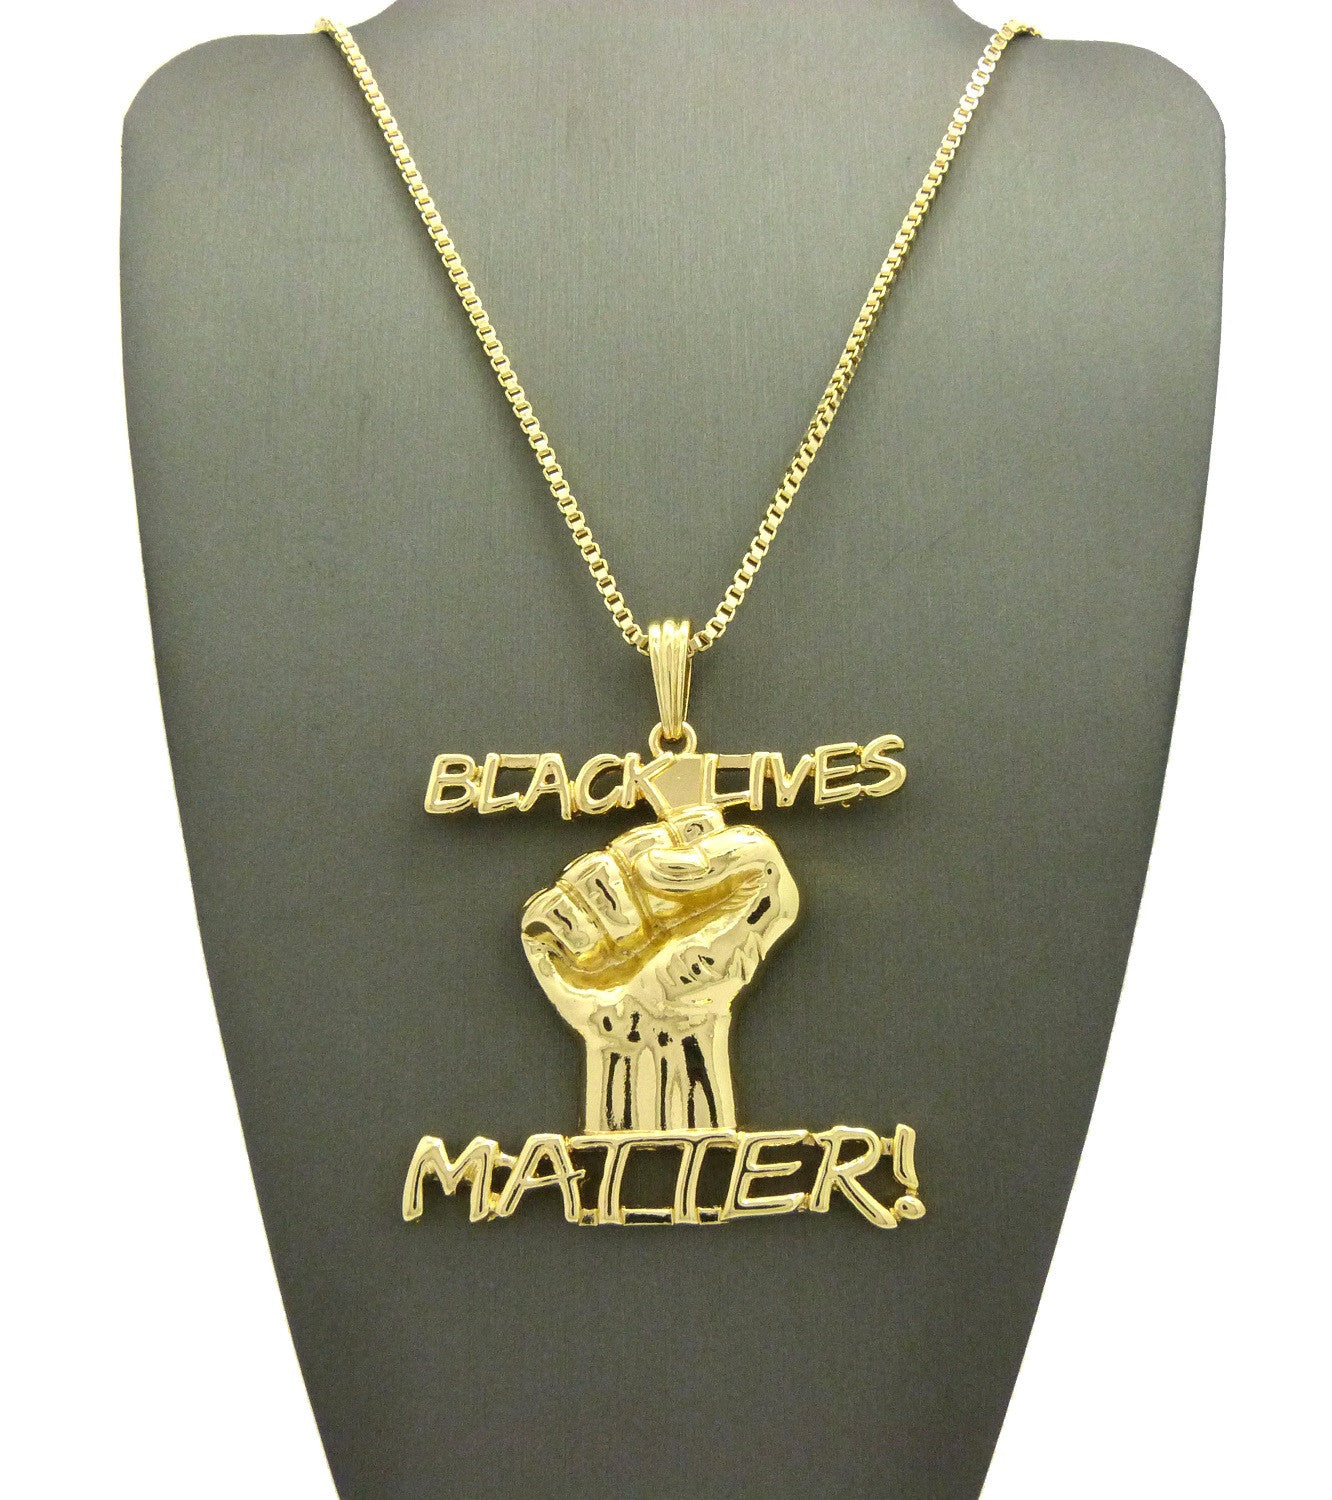 14k Gold Plated Black Lives Matter Piece On 24 Inch Box Chain